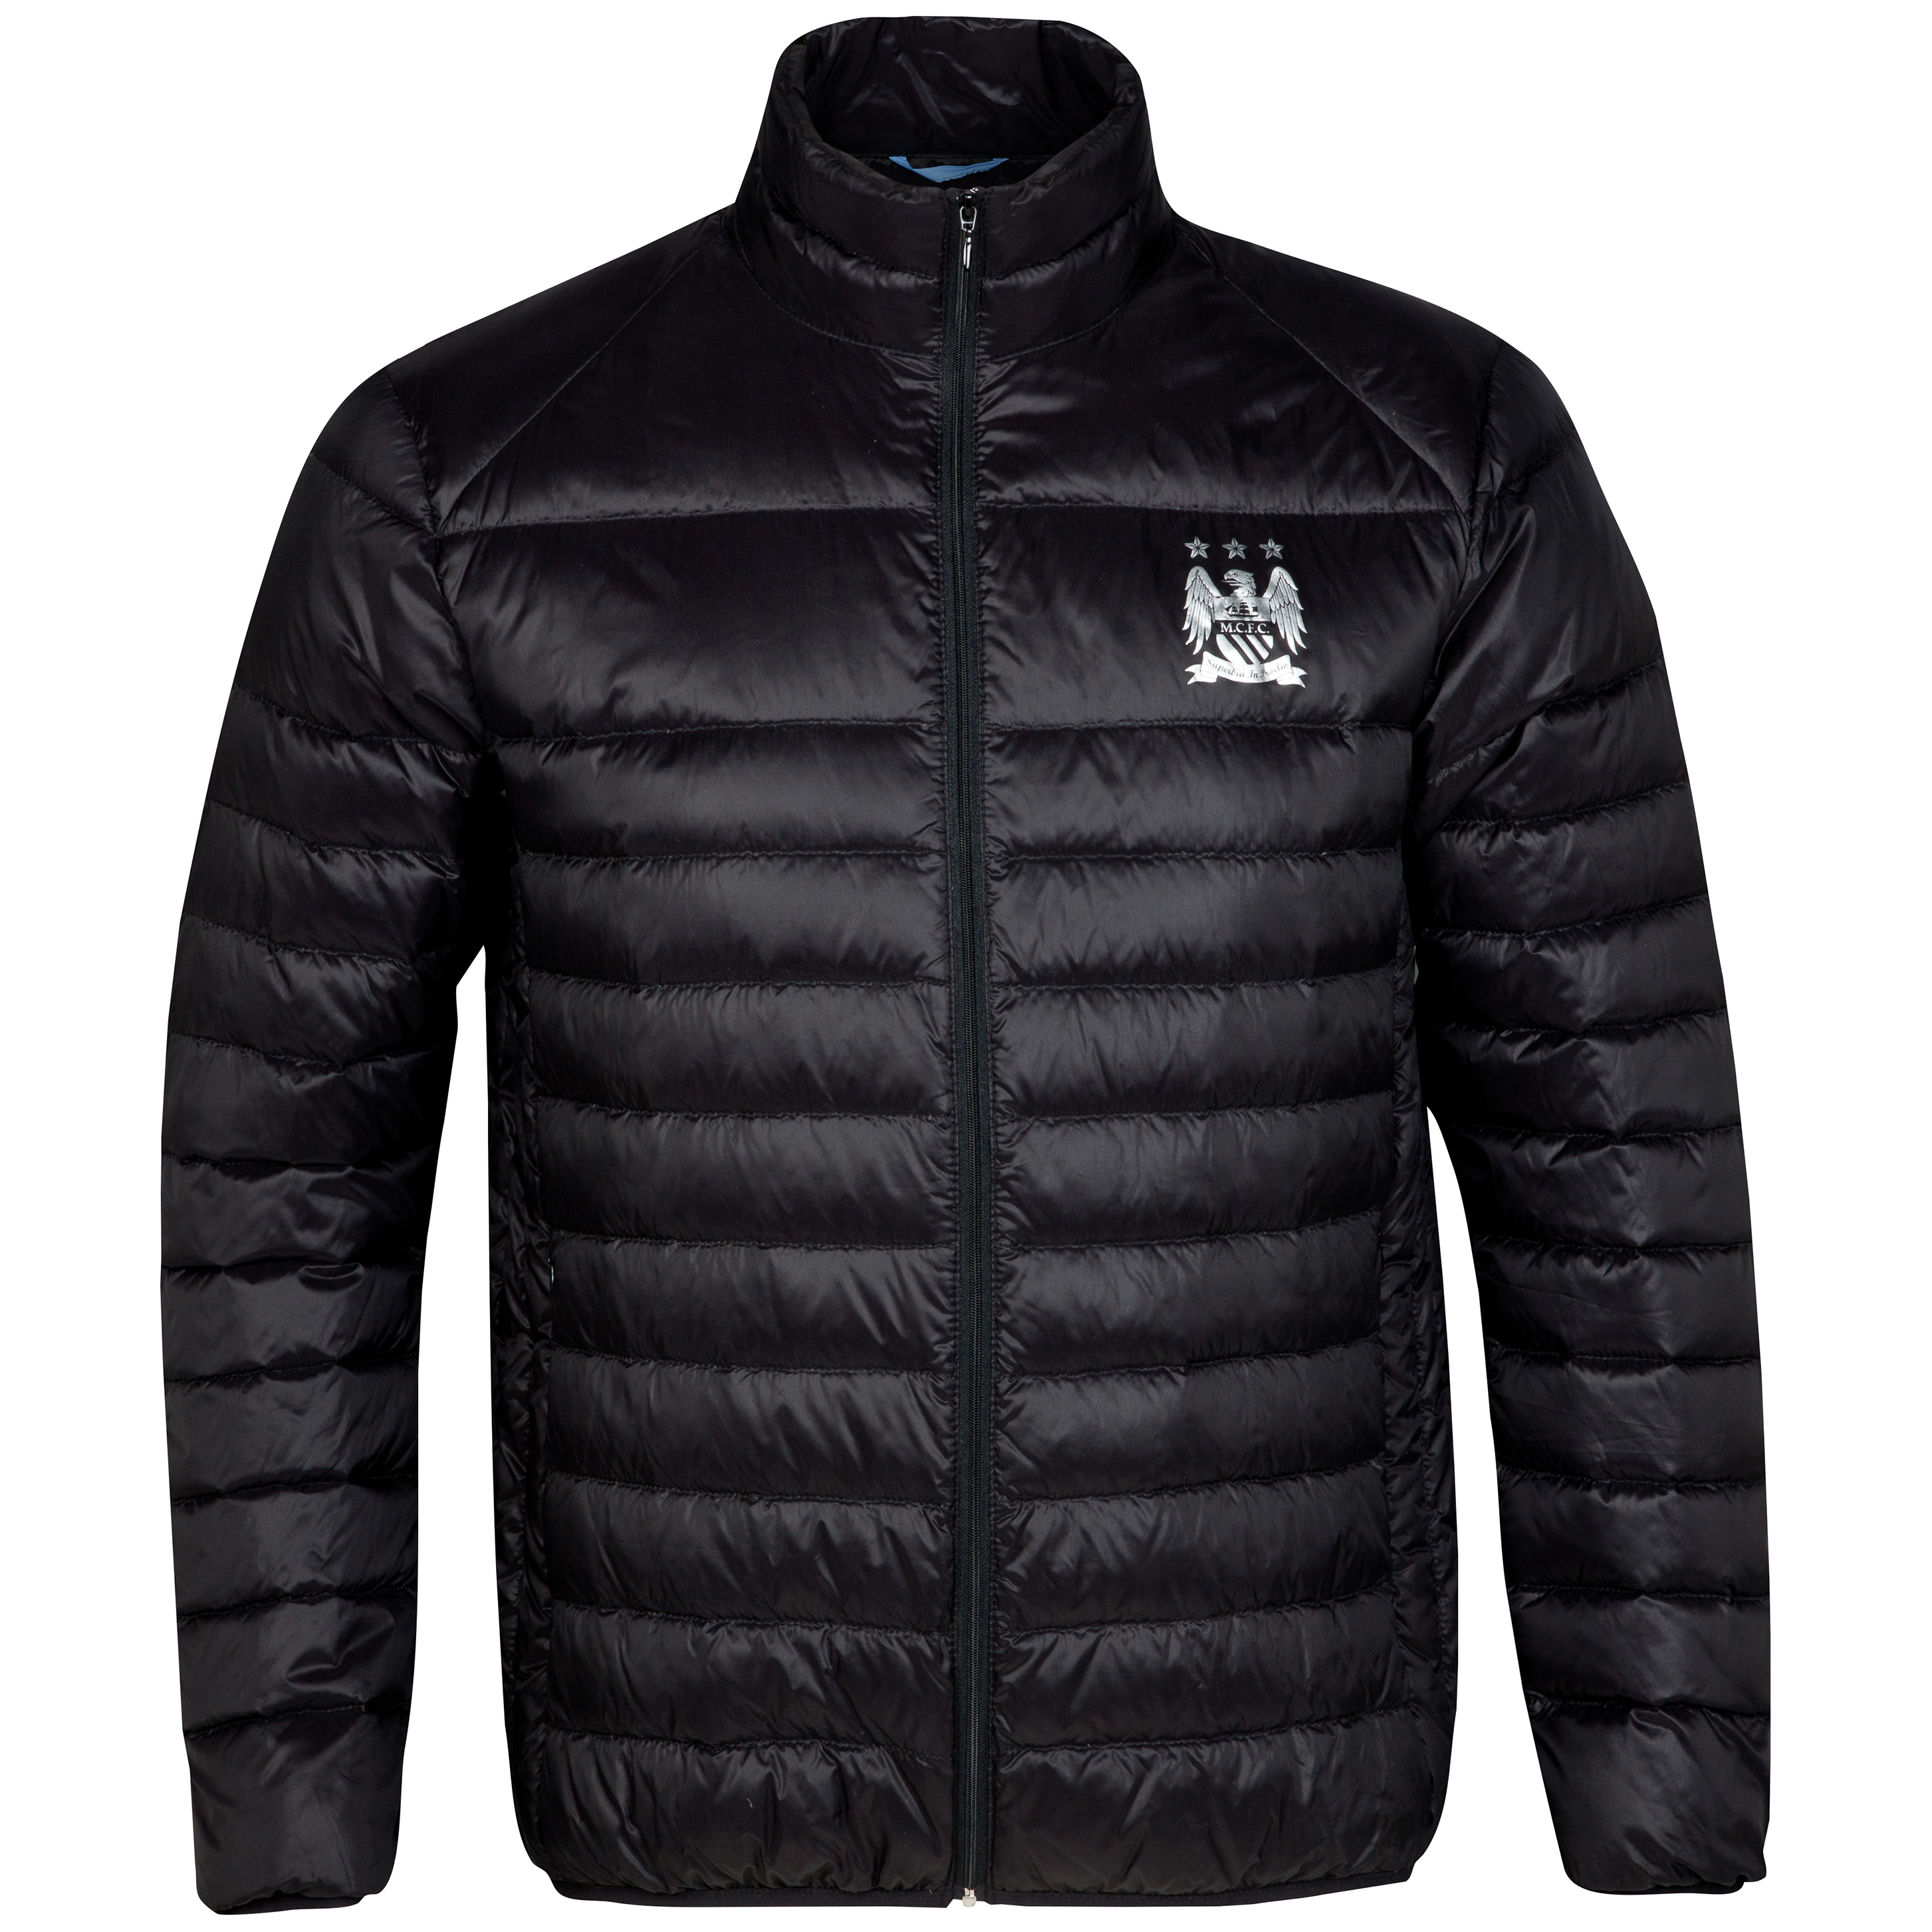 Manchester City Performance Orka Jacket	- Black